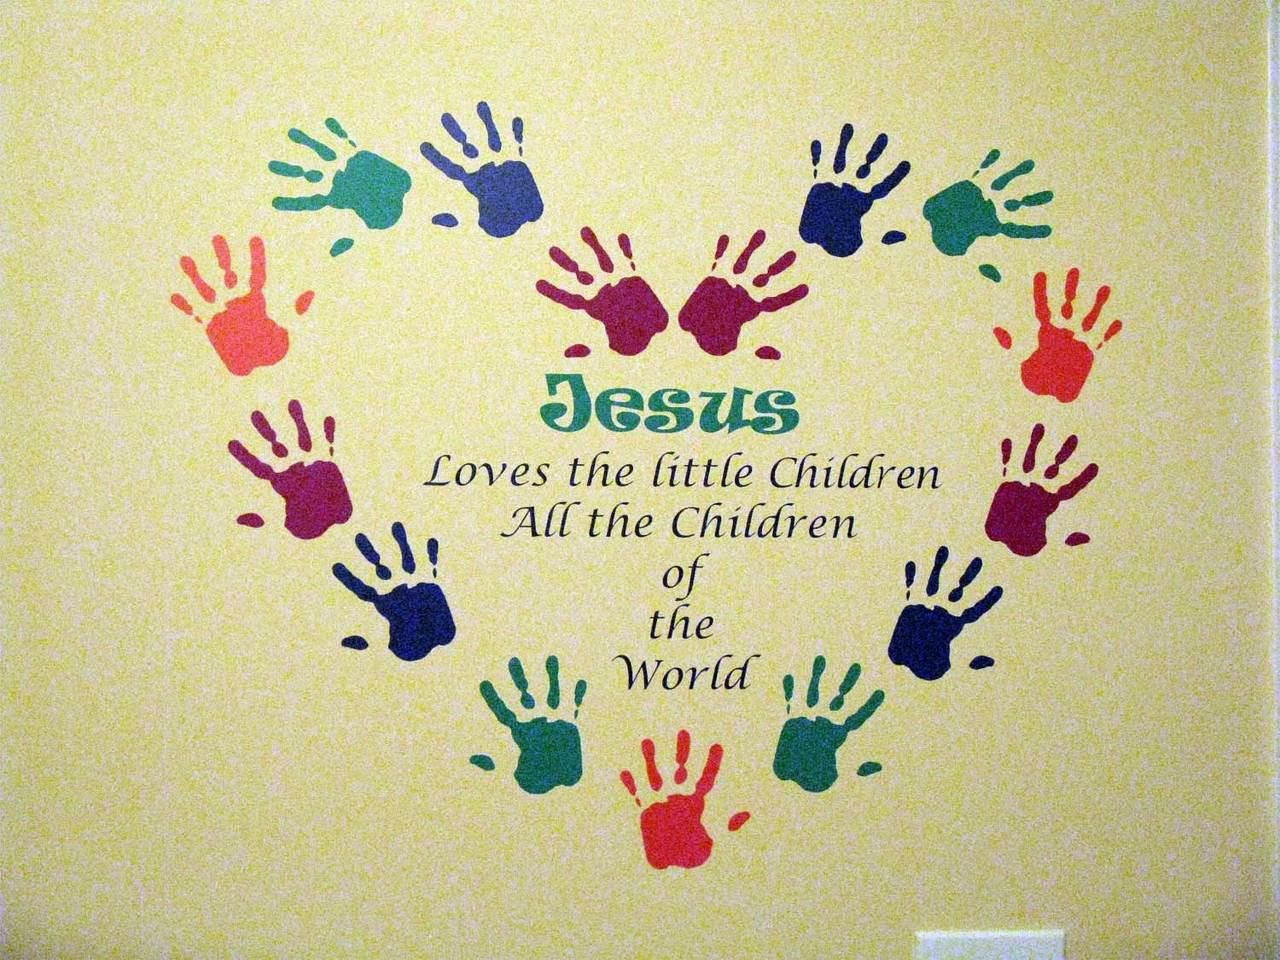 Unique Sunday School Rooms Ideas On Pinterest Sunday School - Wall decals for church nursery